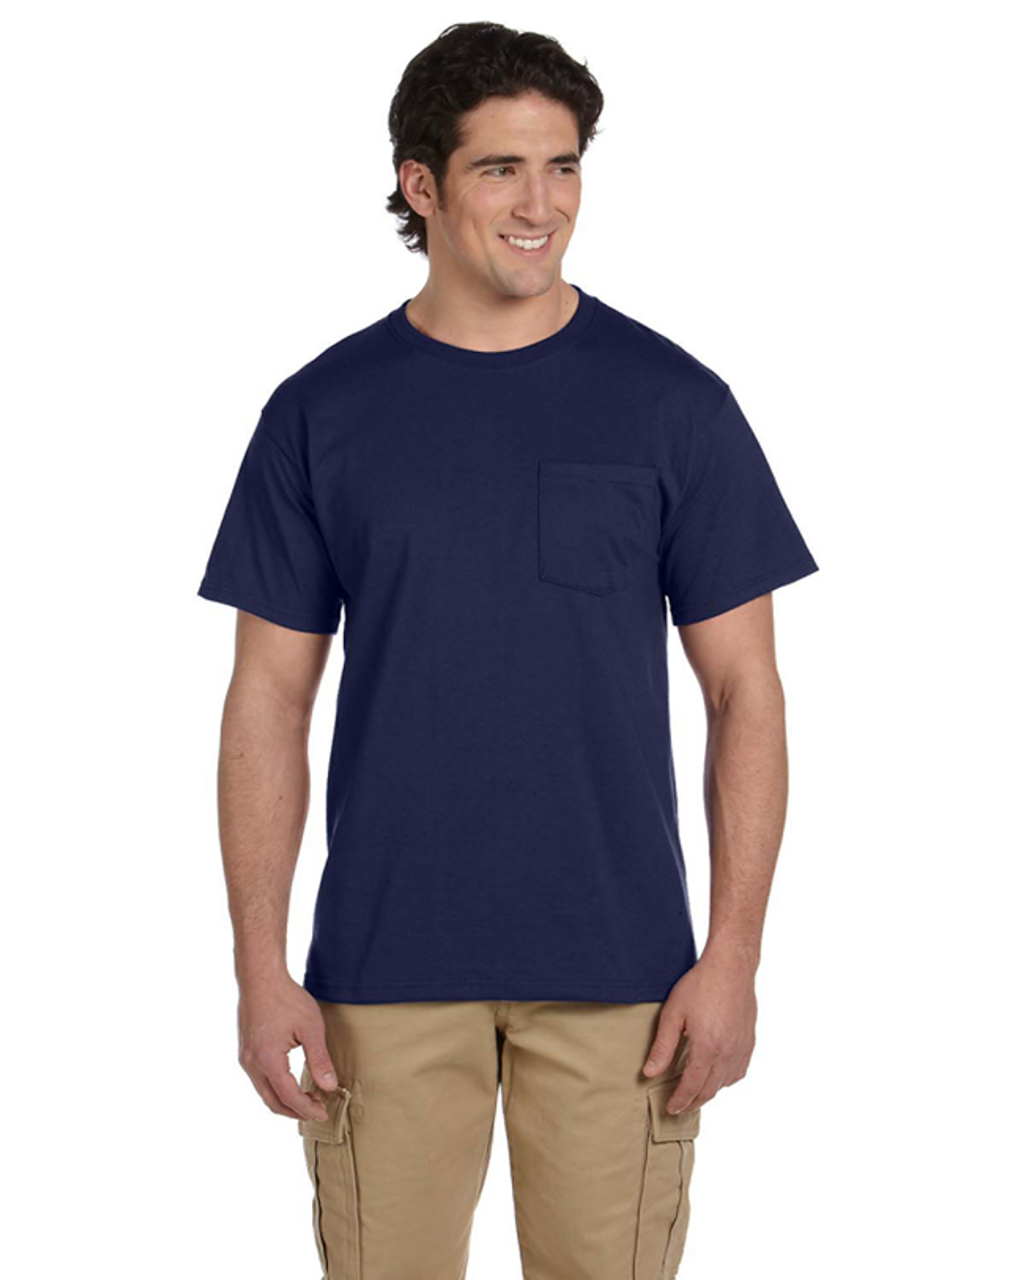 J Navy - 29P Jerzees 50/50 Heavyweight Blend™ Pocket T-Shirt | Blankclothing.ca